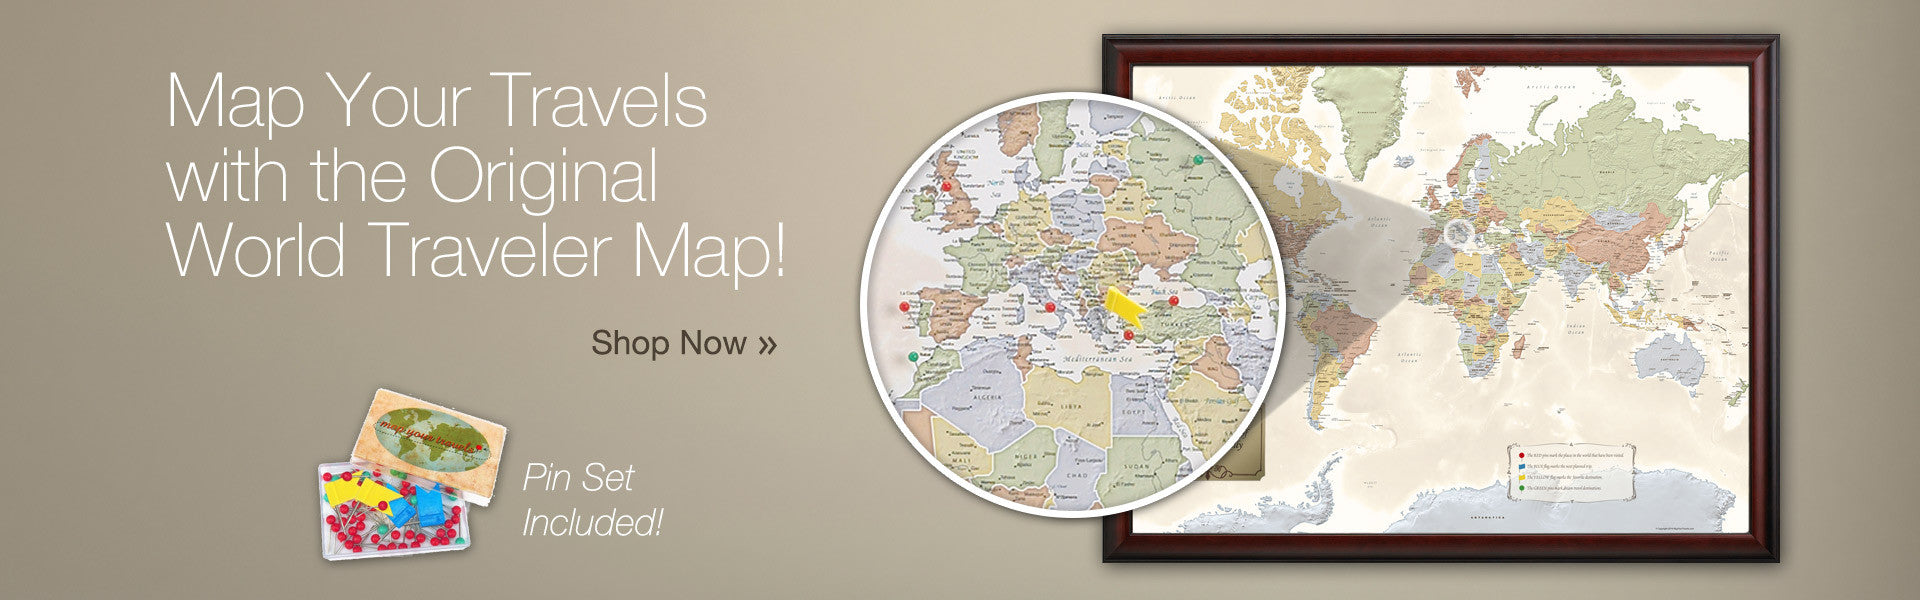 Map Your Travels with the Original World Traveler Map